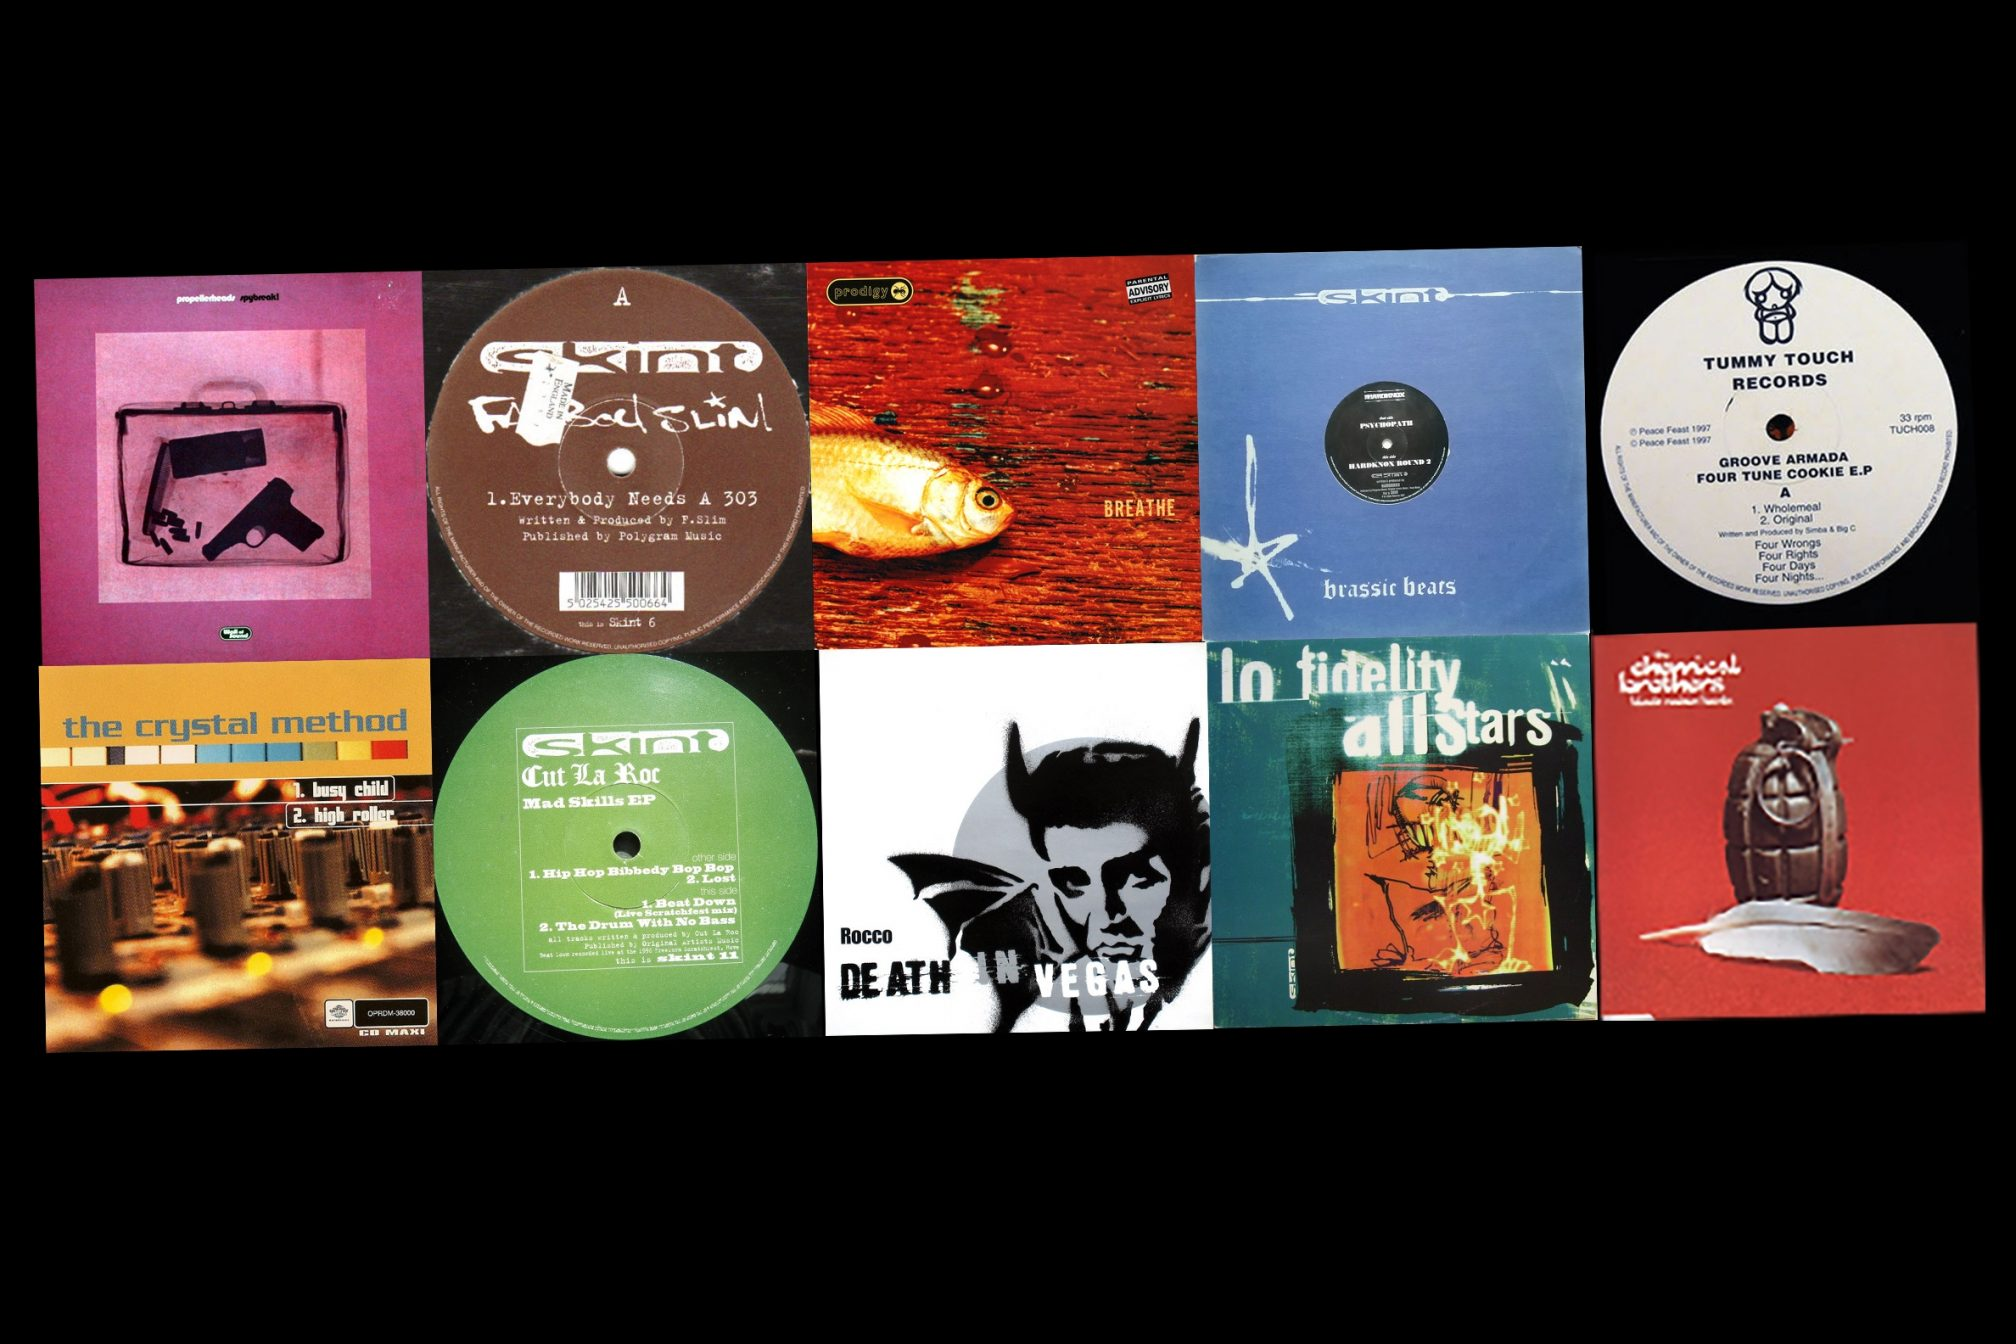 The 10 best big beat tracks released pre-'98 - Lists - Mixmag